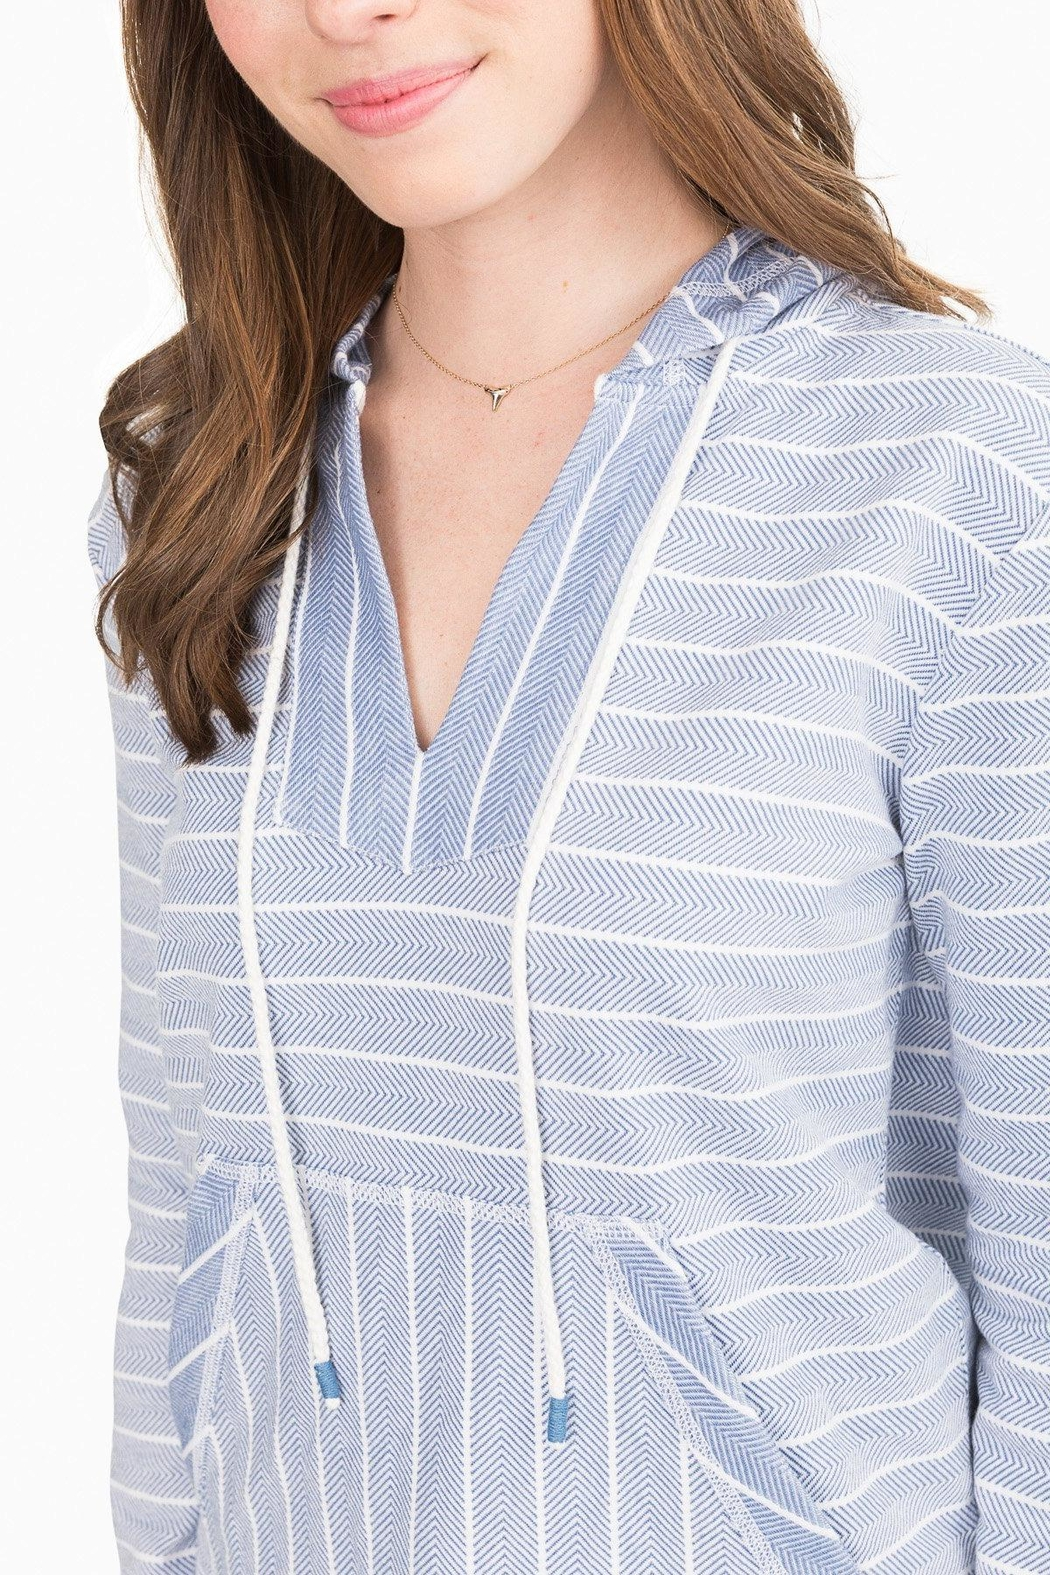 Southern Tide Paiton Striped Hoodie - Side Cropped Image